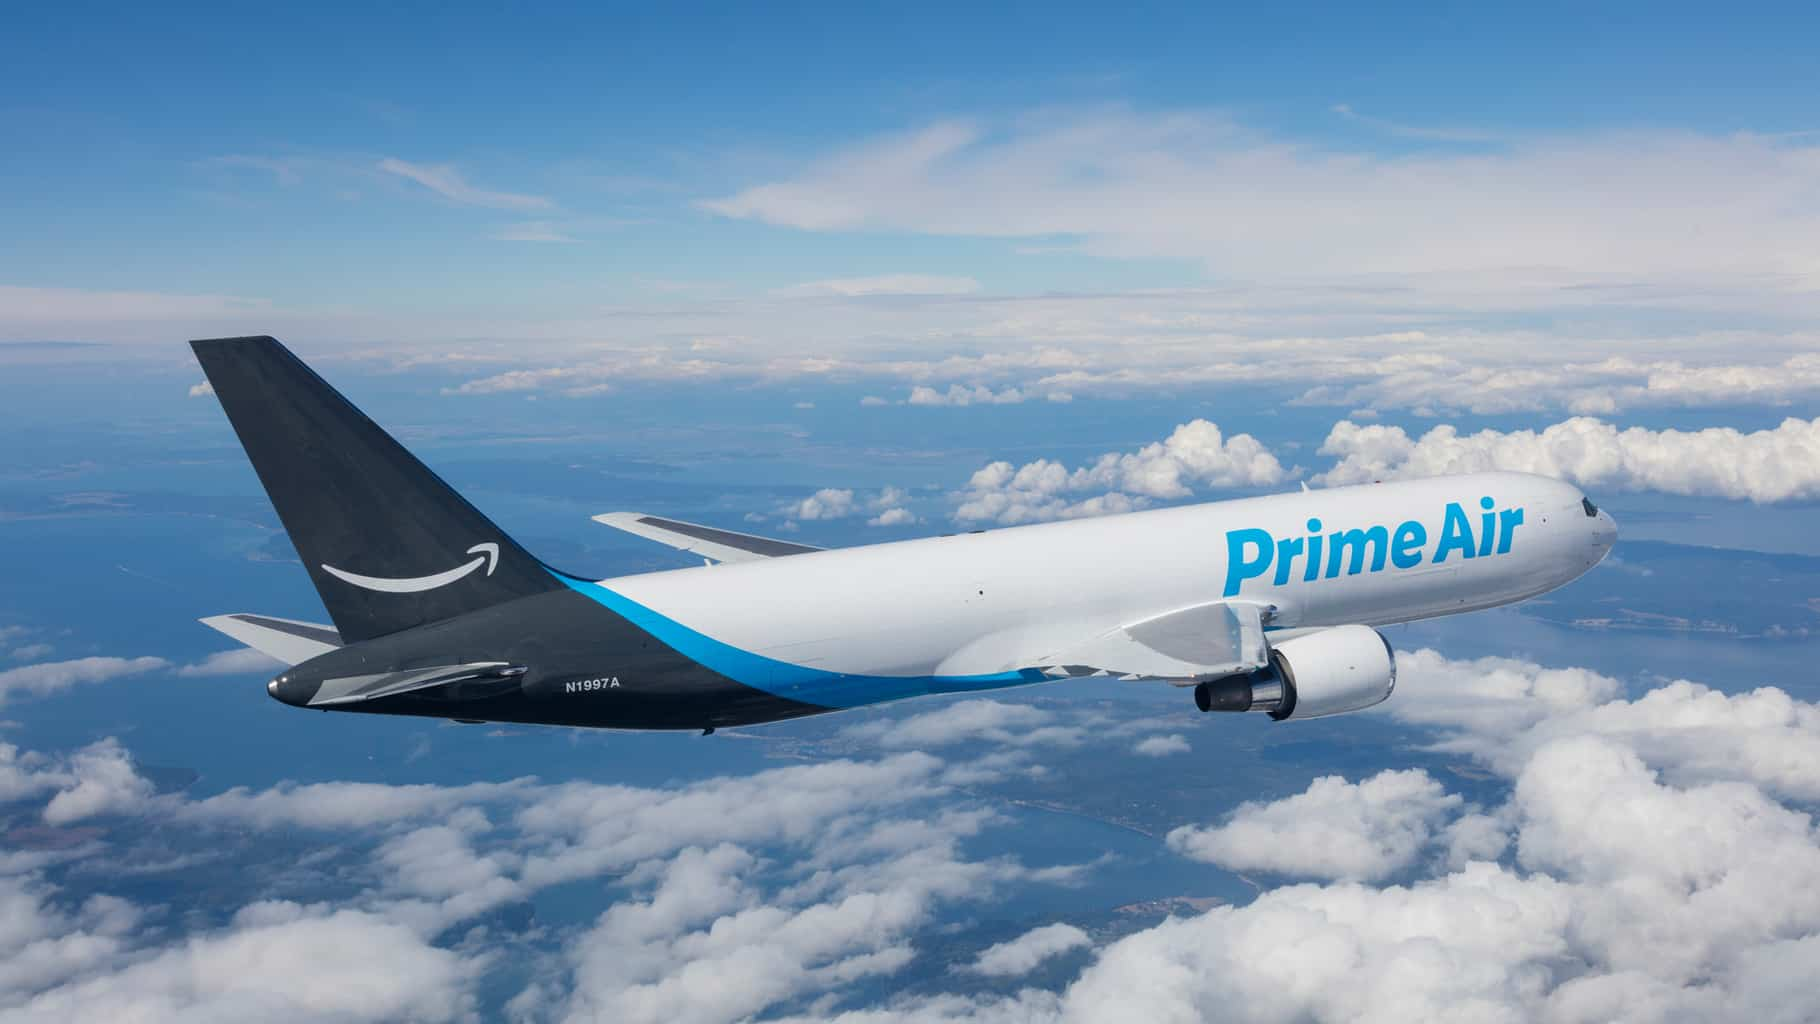 Amazon to lease 15 more 737 freighters in deal with GE unit